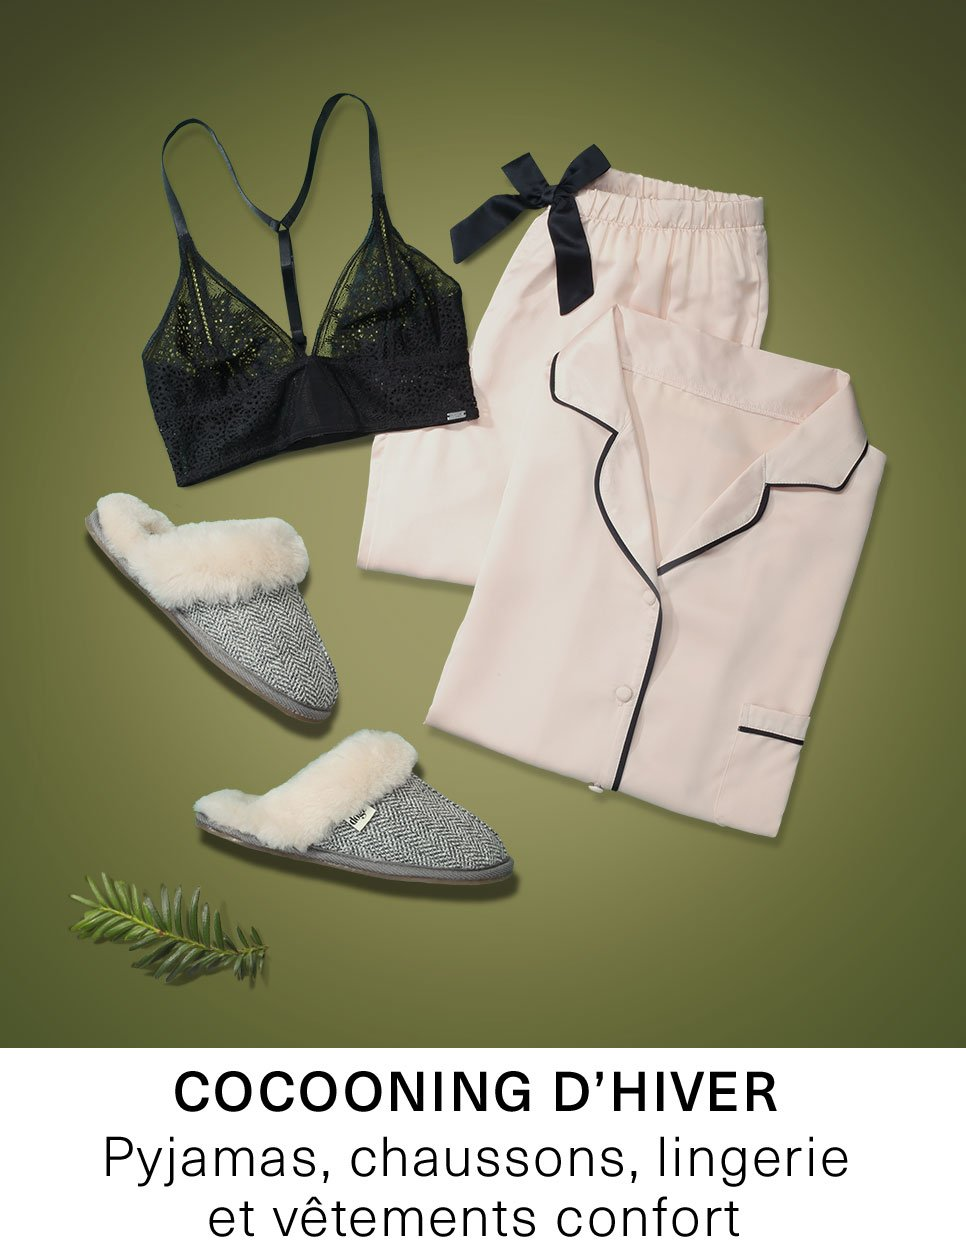 Cocooning d'hiver